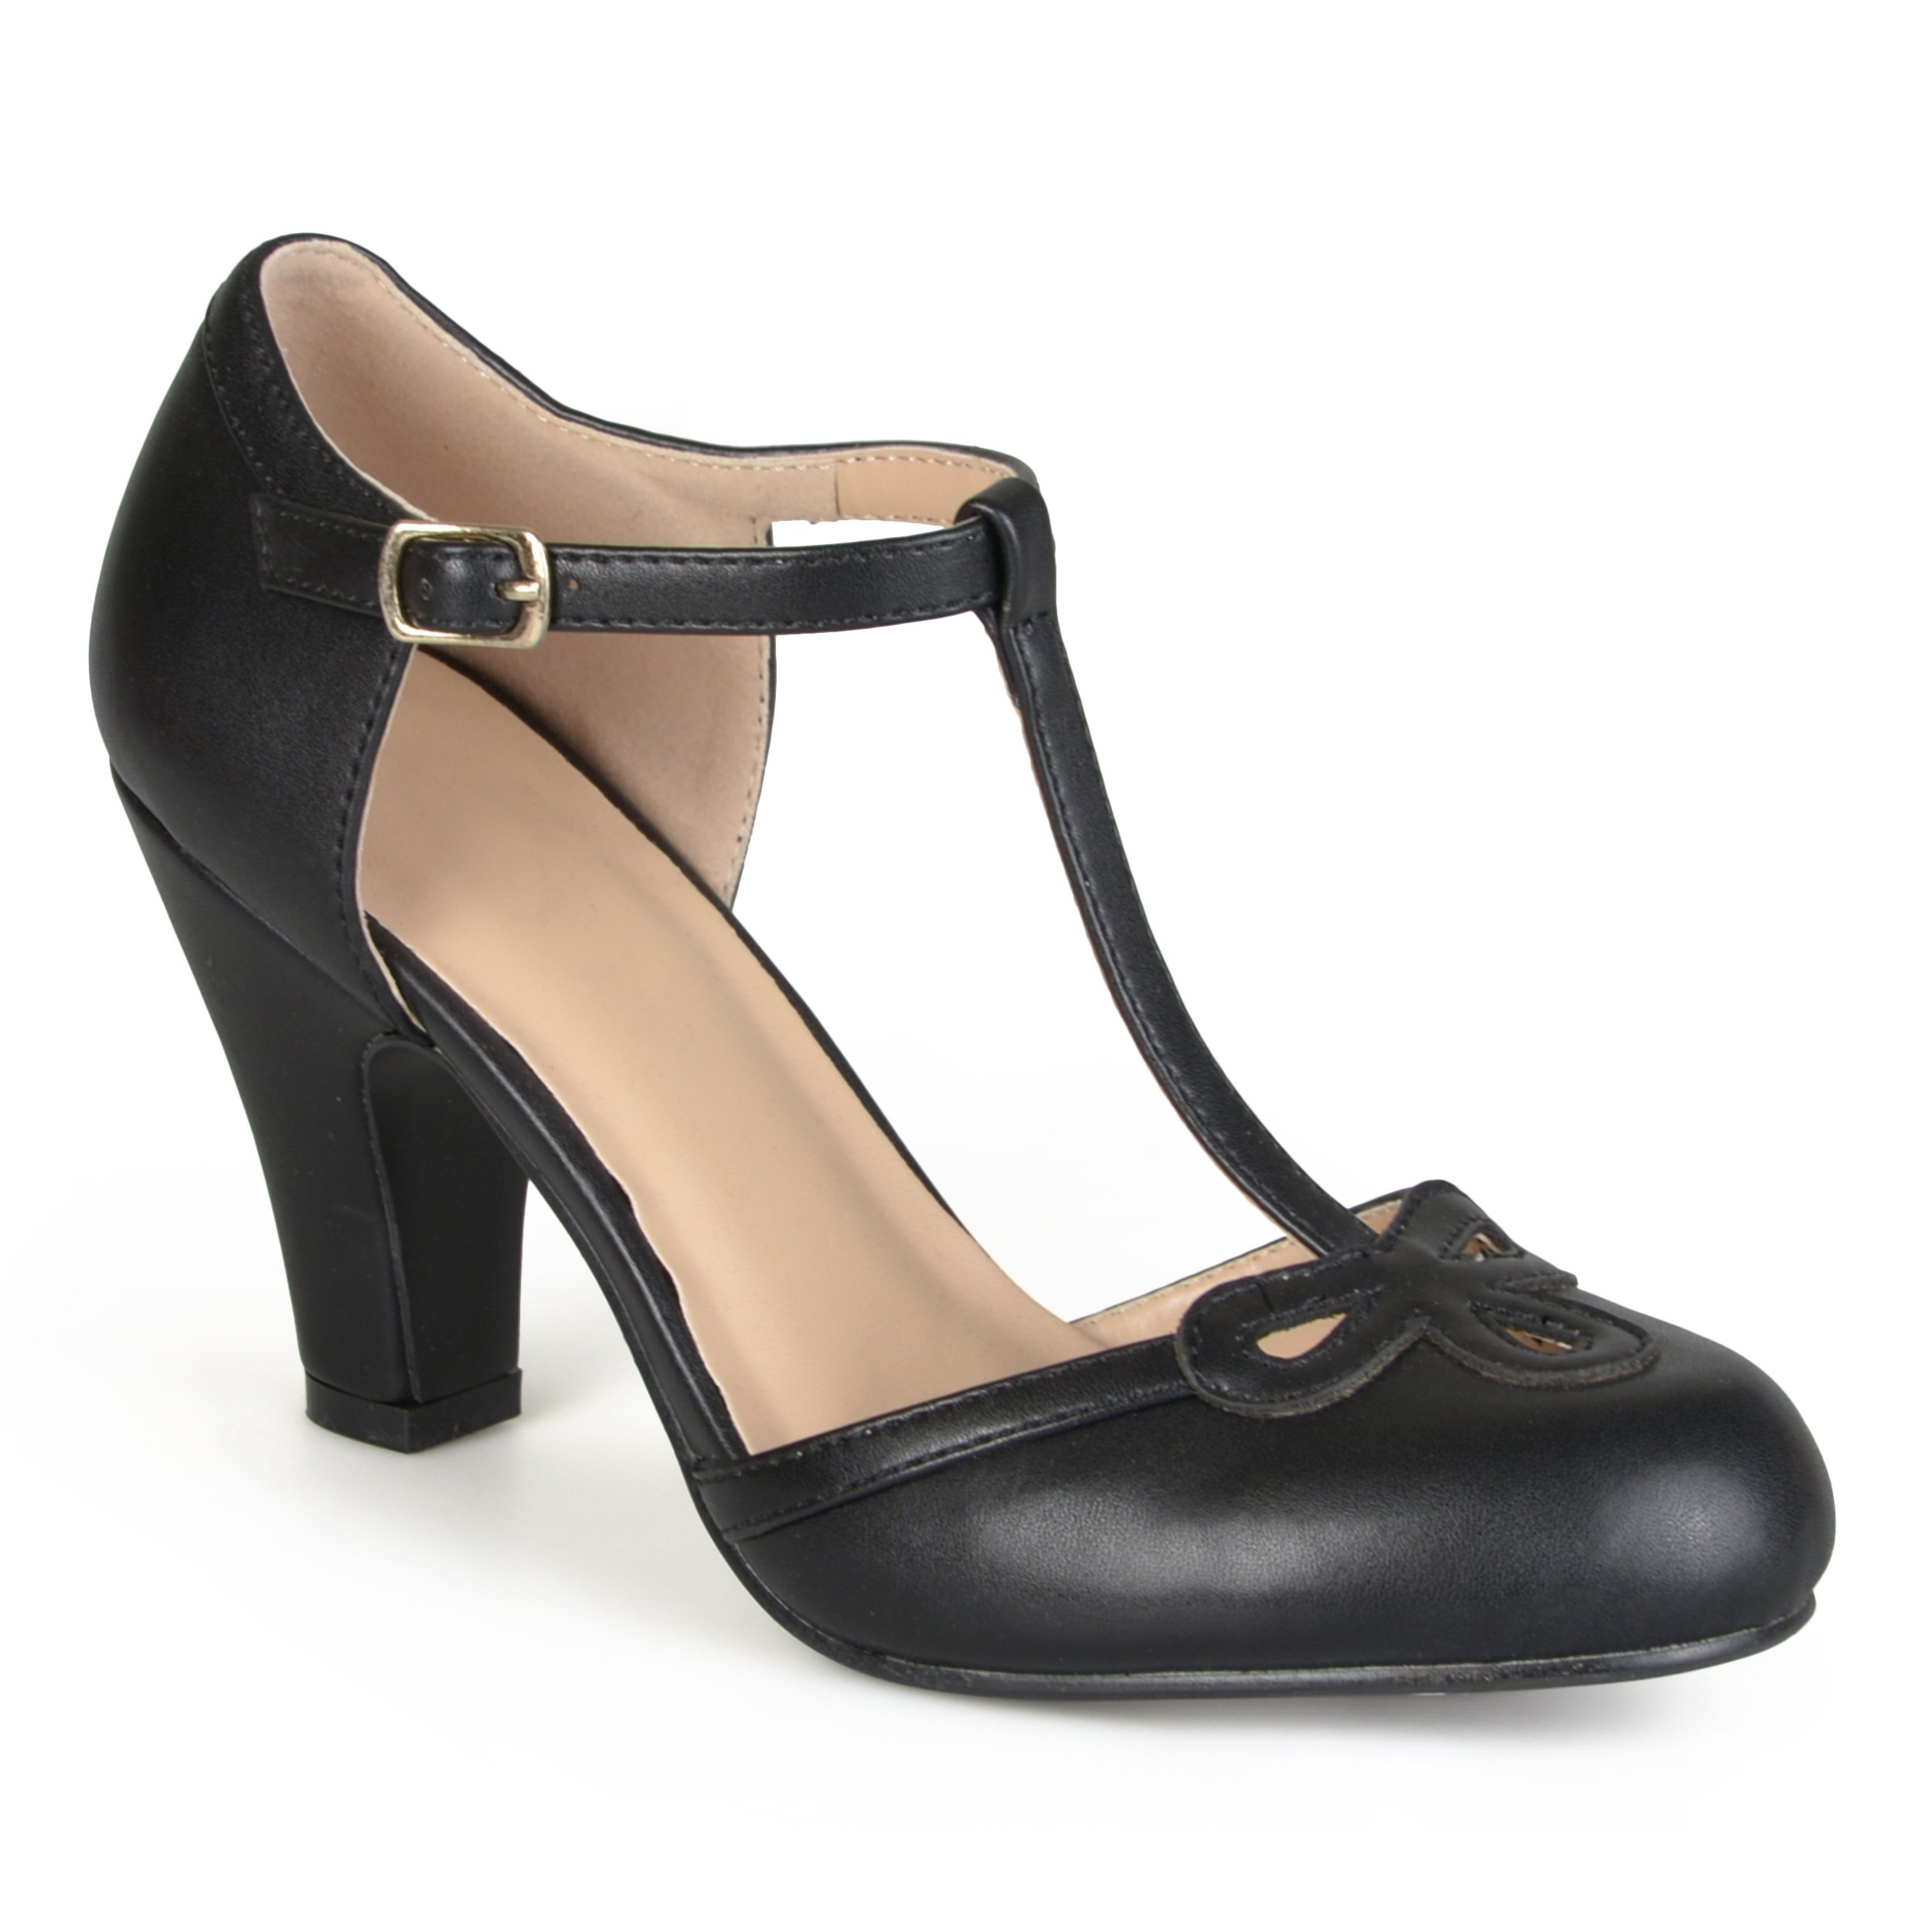 Journee Collection Womens T-Strap Round Toe Mary Jane Pumps Black, 6 Regular US